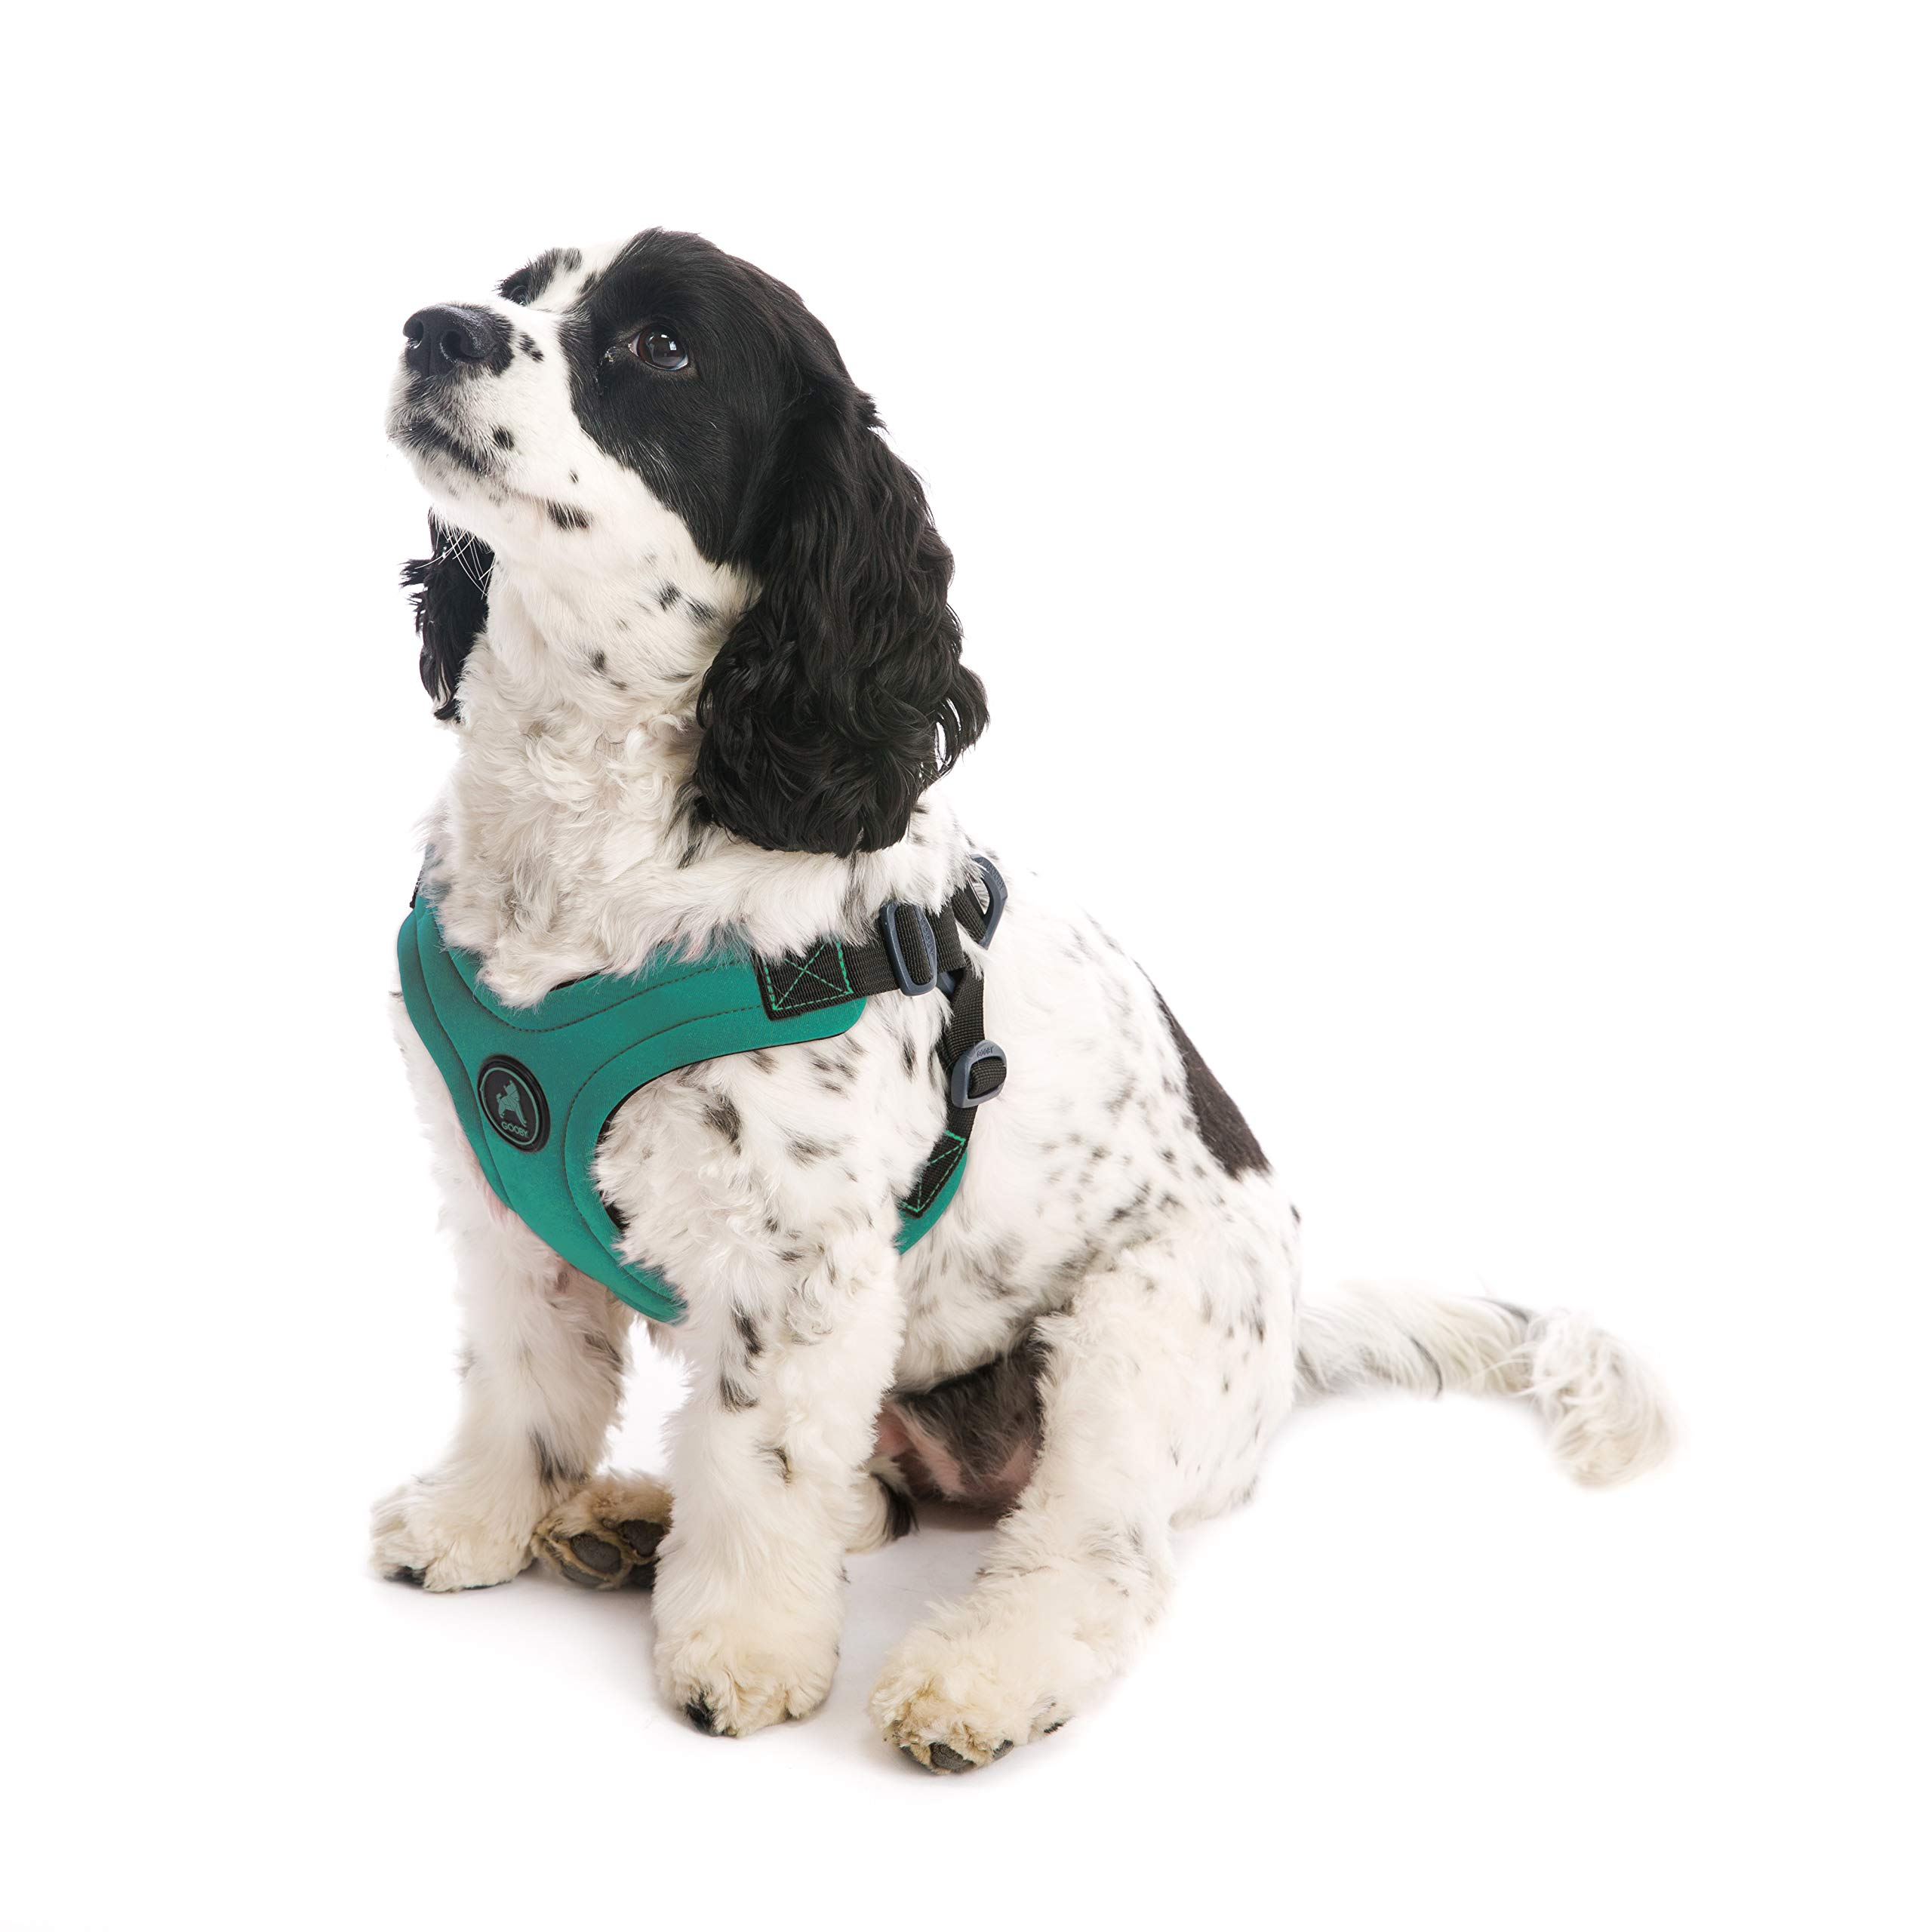 Gooby - Escape Free Sport Harness, Small Dog Step-in Neoprene Harness for Dogs That Like to Escape Their Harness, Turquoise, Large